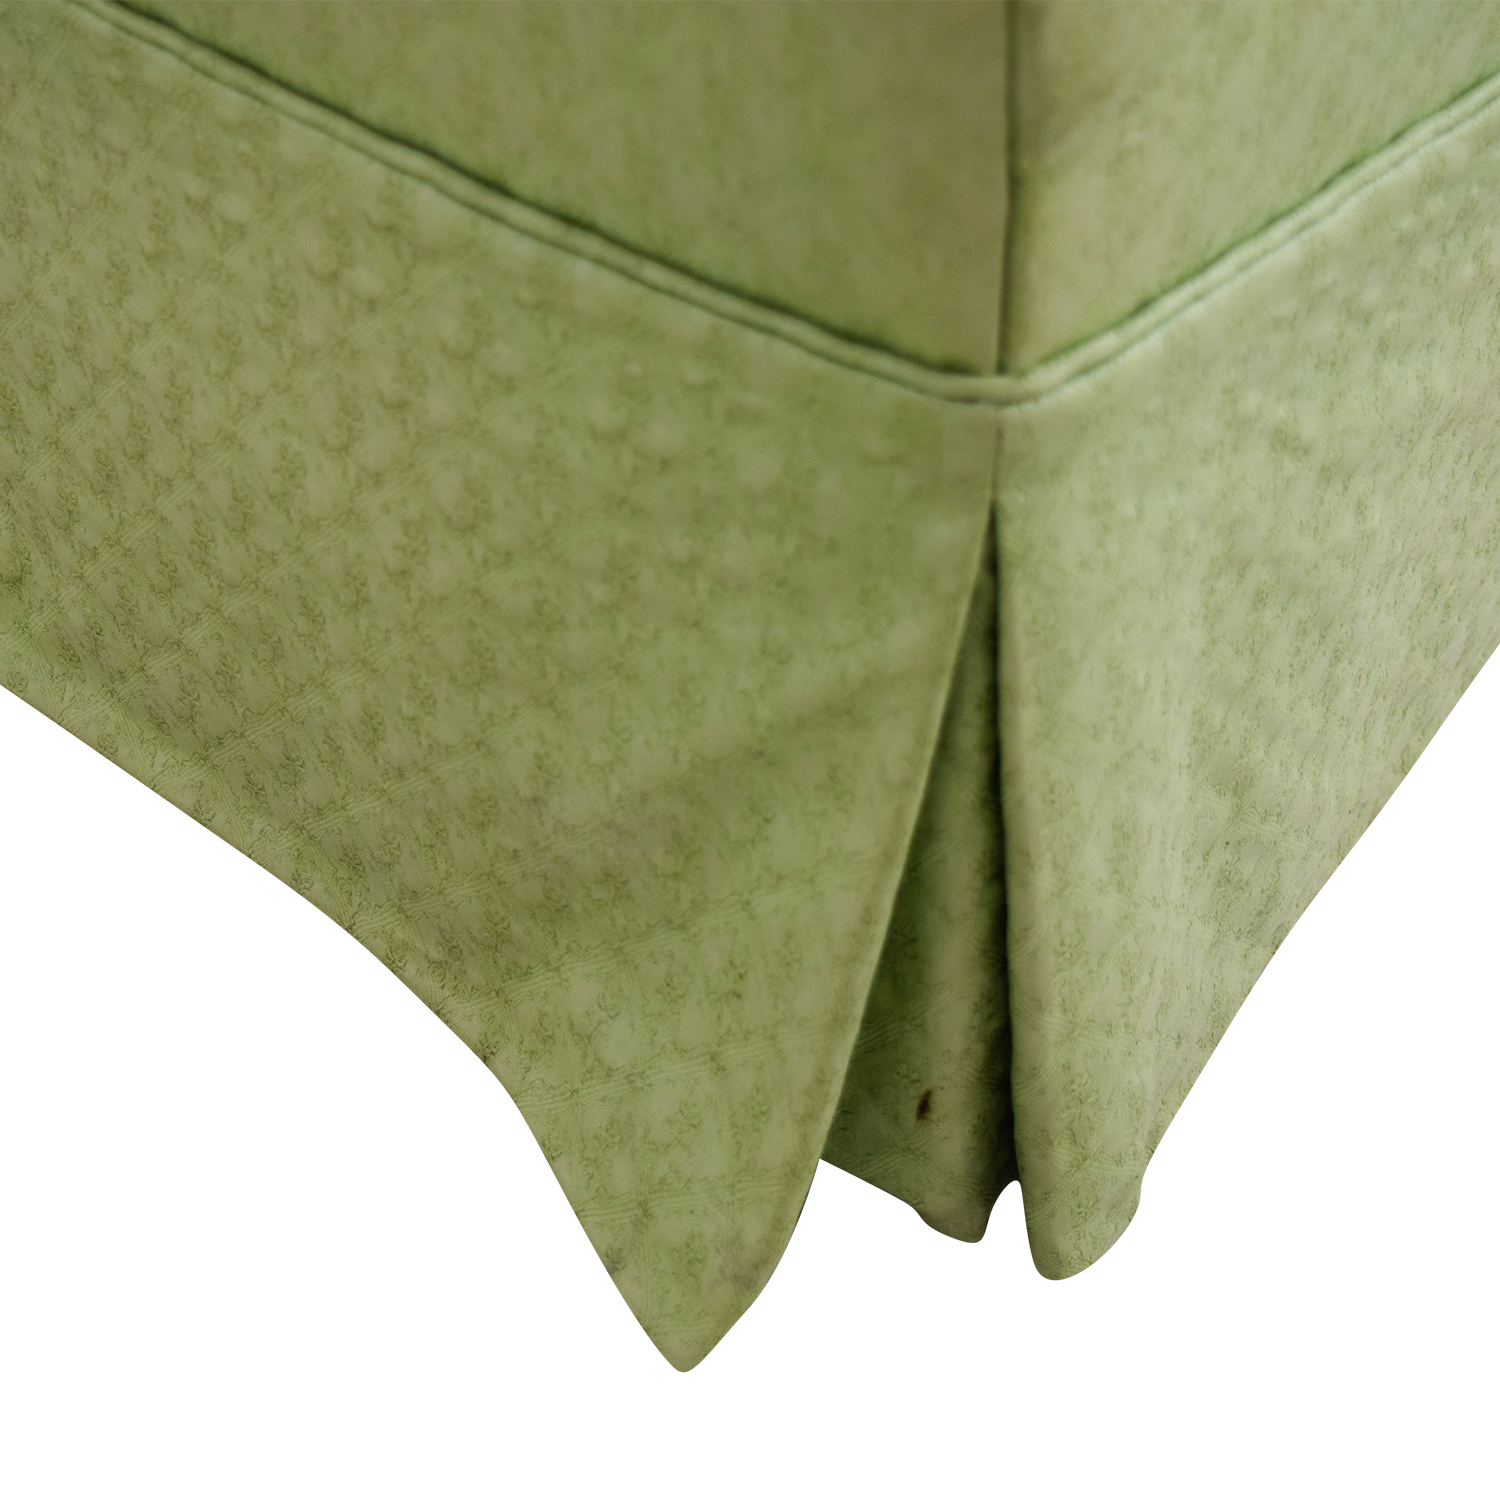 Furniture Masters Furniture Masters Green Skirted Armchair second hand